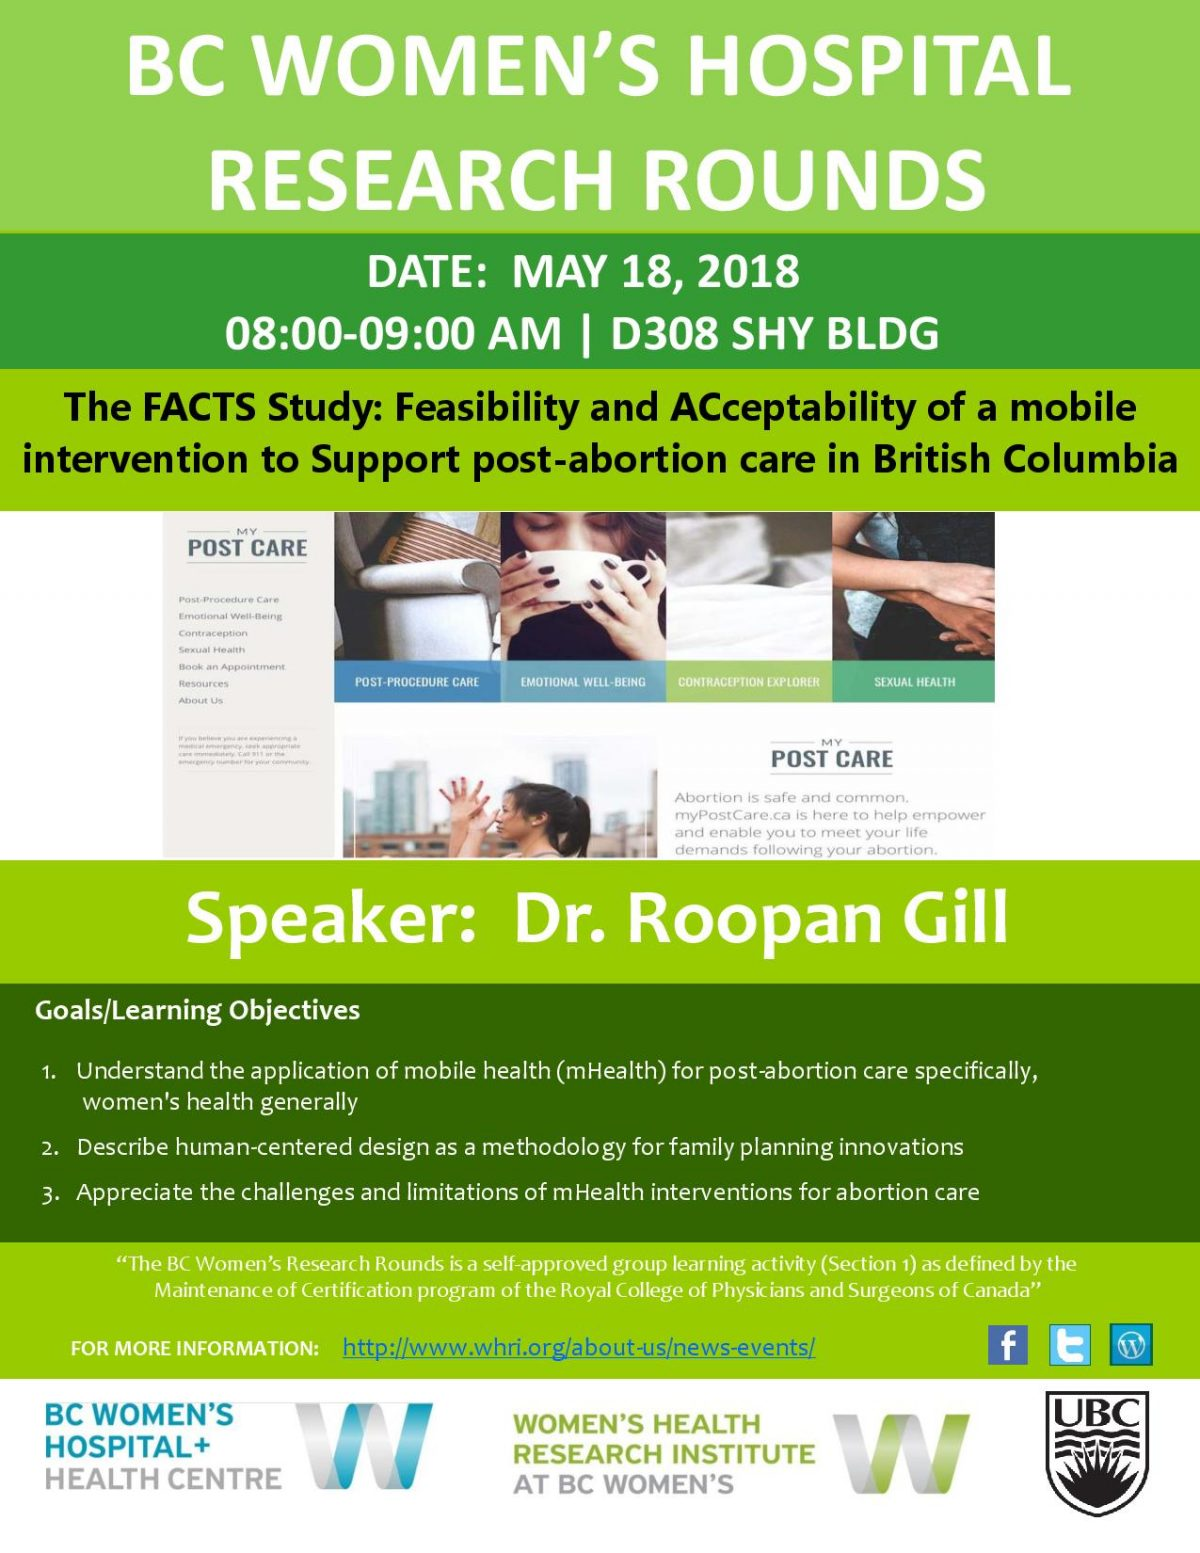 Research Rounds: The FACTS Study: Feasibility and ACceptability of a mobile intervention to Support post-abortion care in British Columbia